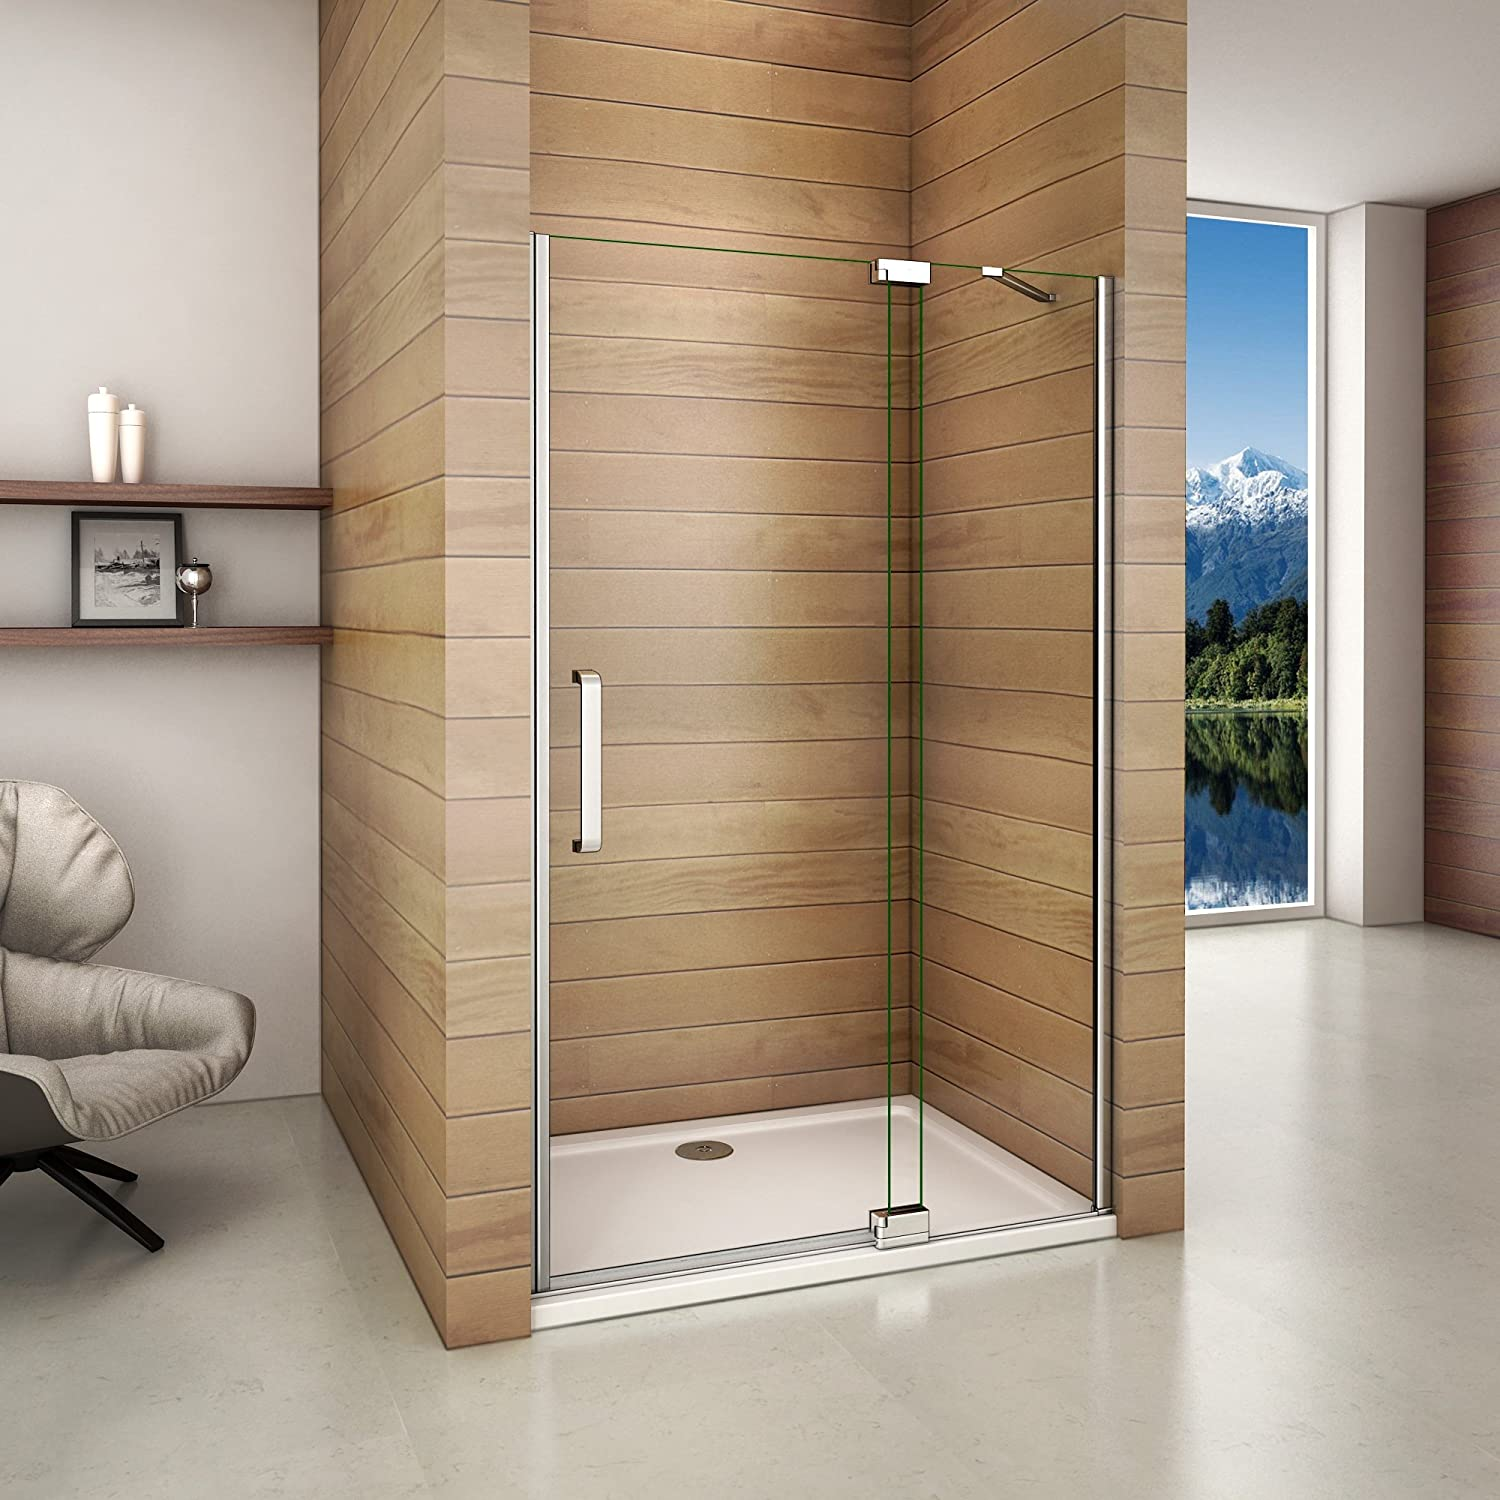 Perfect 800mm Pivot Shower Door 8mm Easy Clean Glass Shower Enclosure Cubicle Door